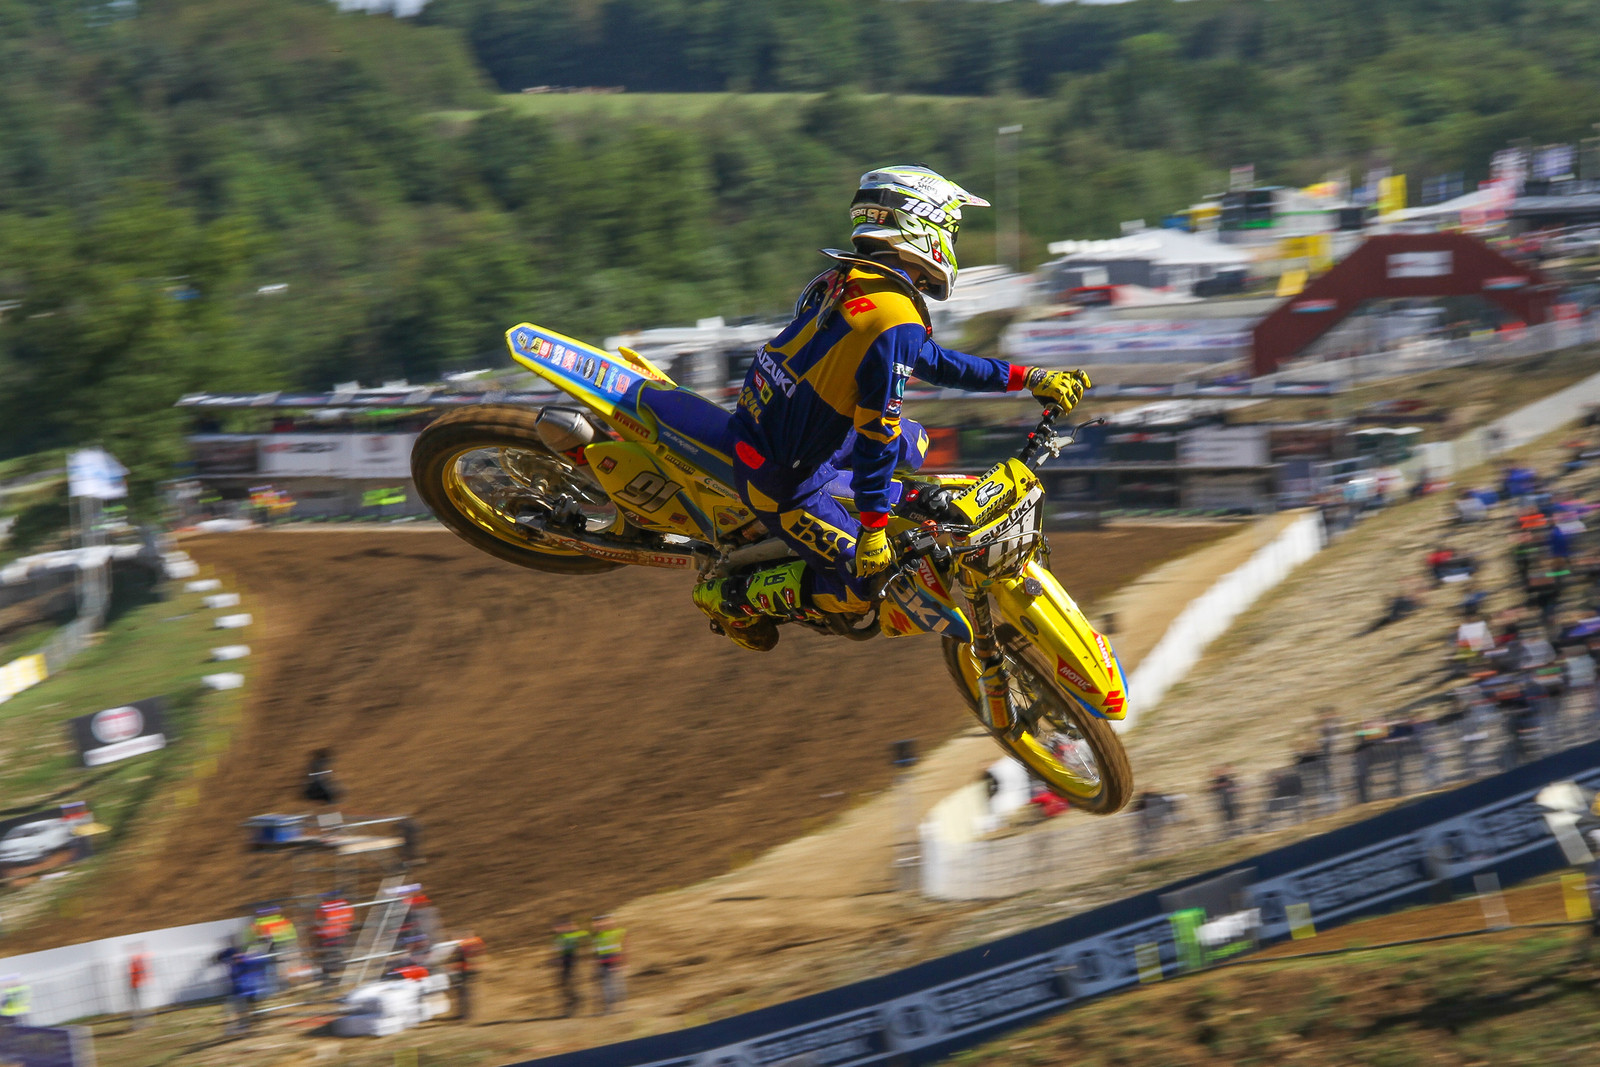 Jeremy Seewer - ayearinmx - Motocross Pictures - Vital MX